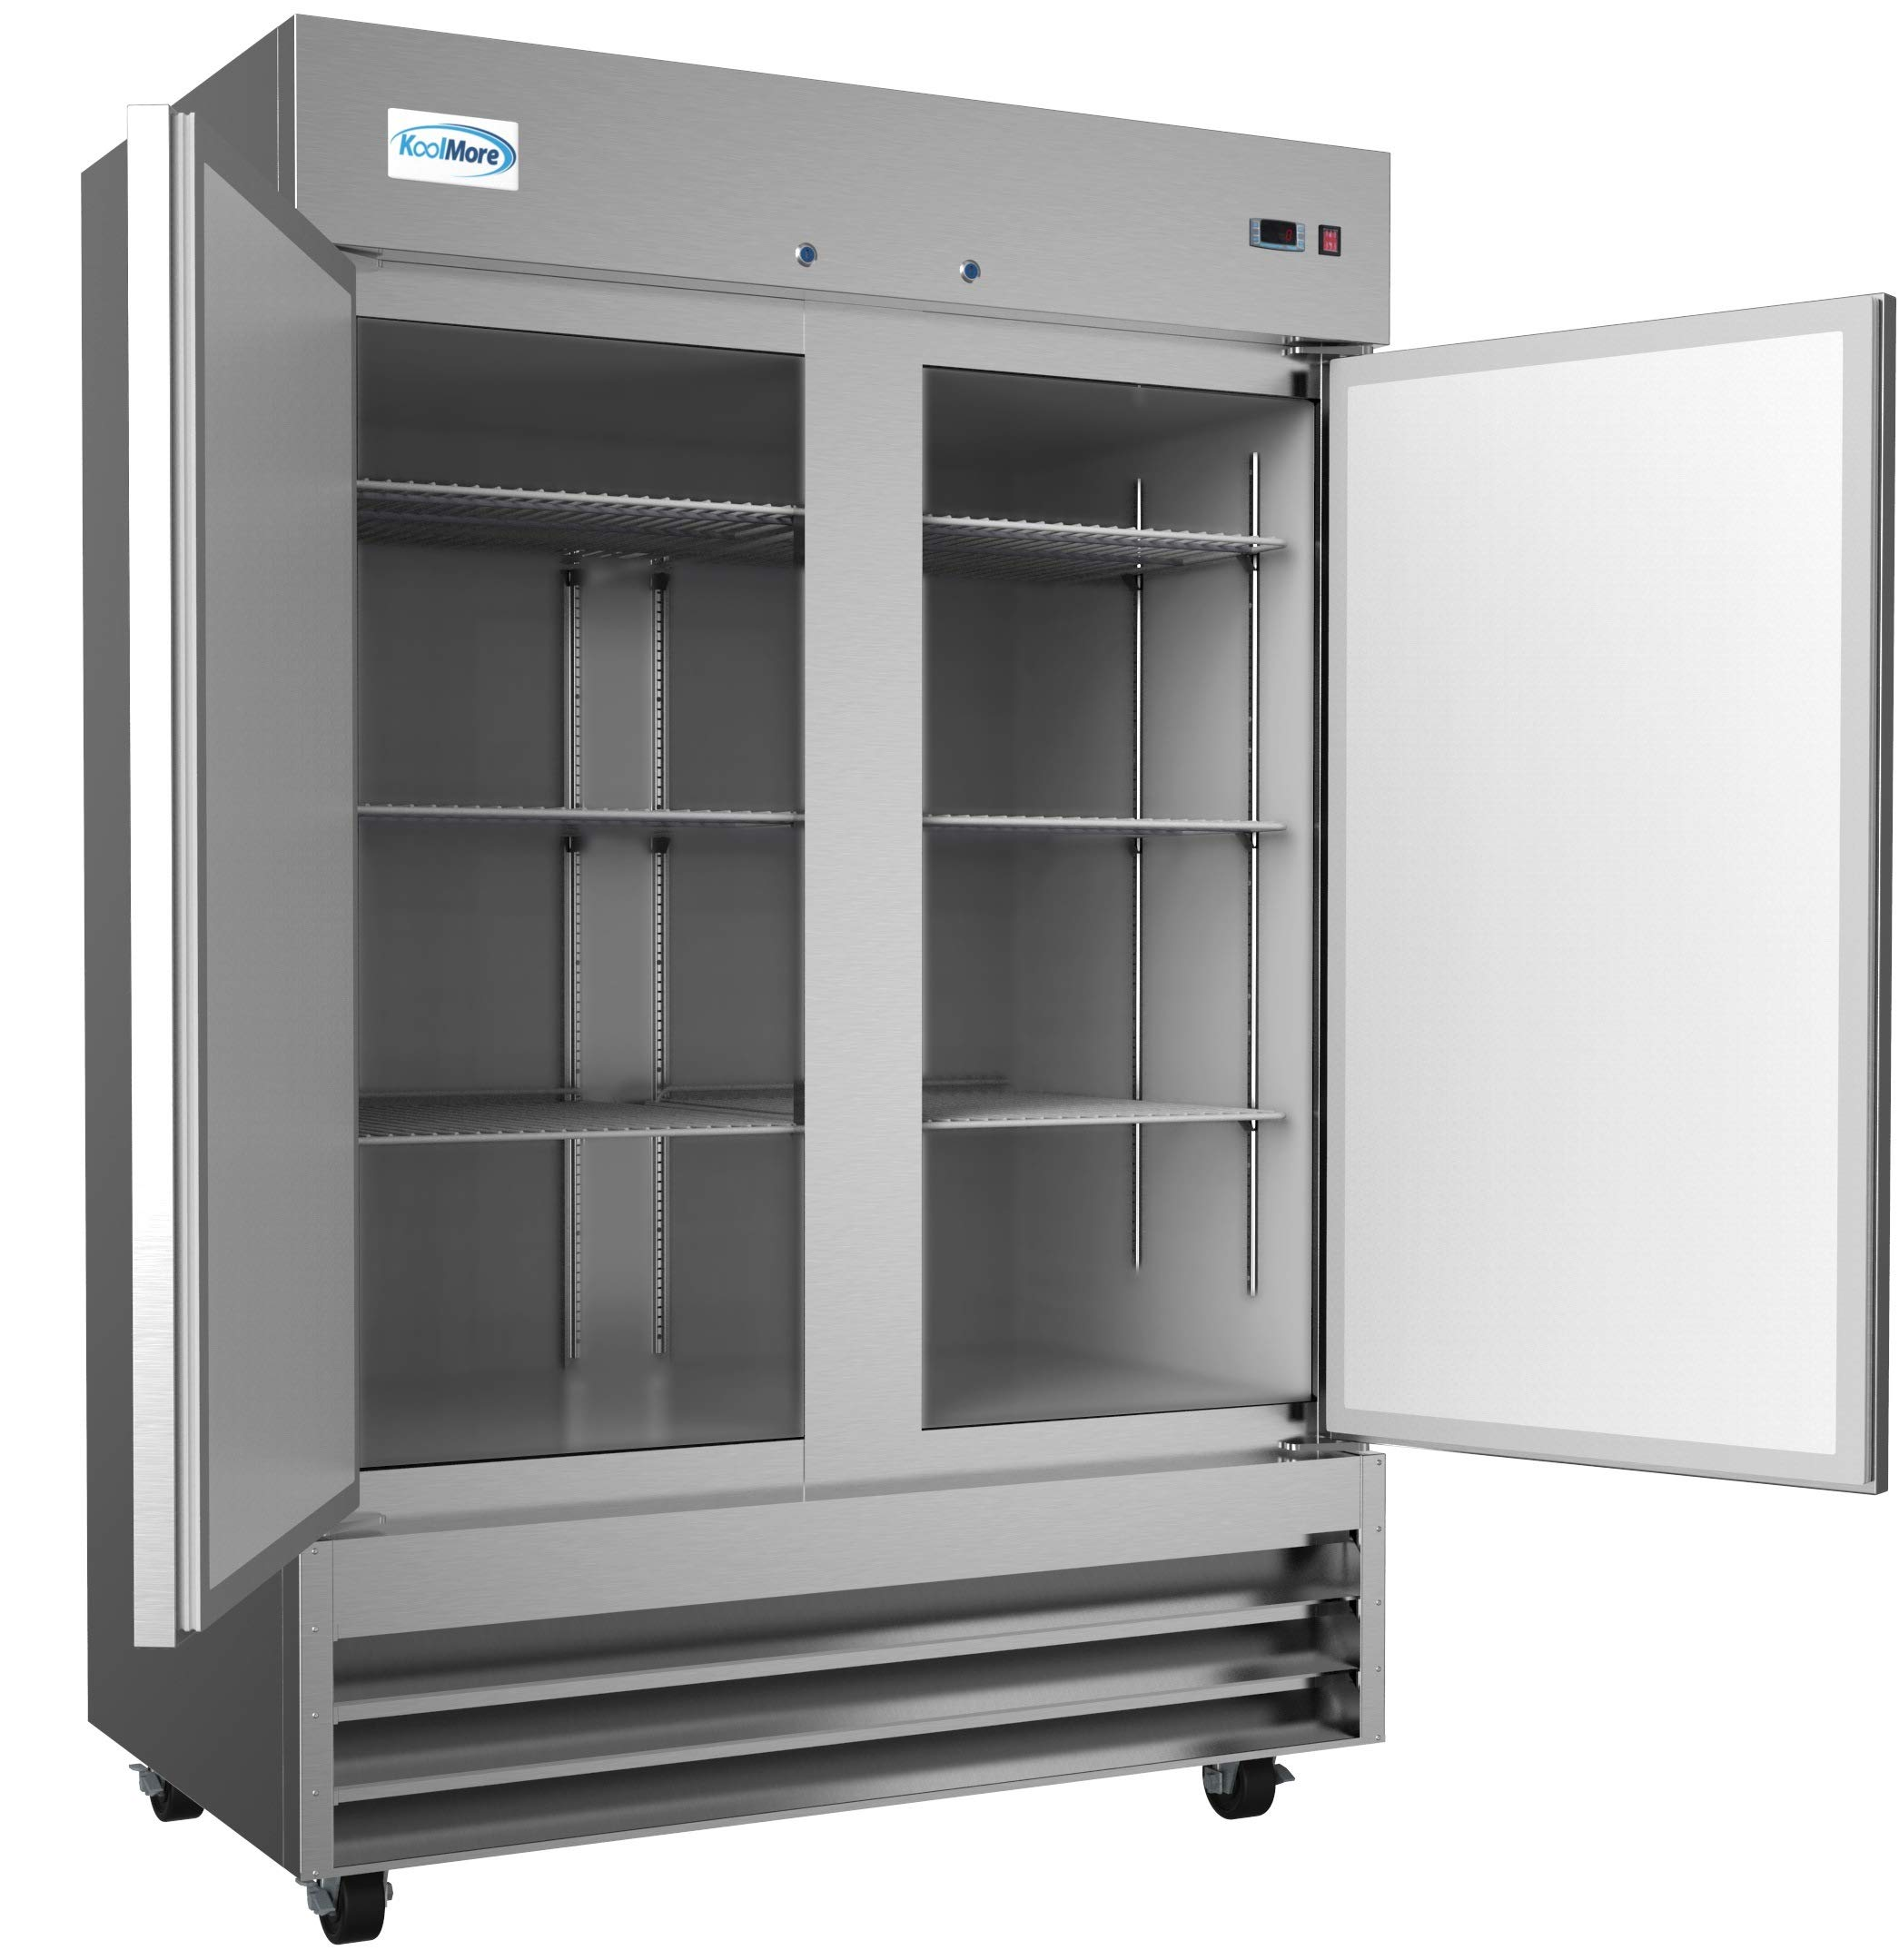 KoolMore Stainless Steel Upright Commercial Reach-In Freezer